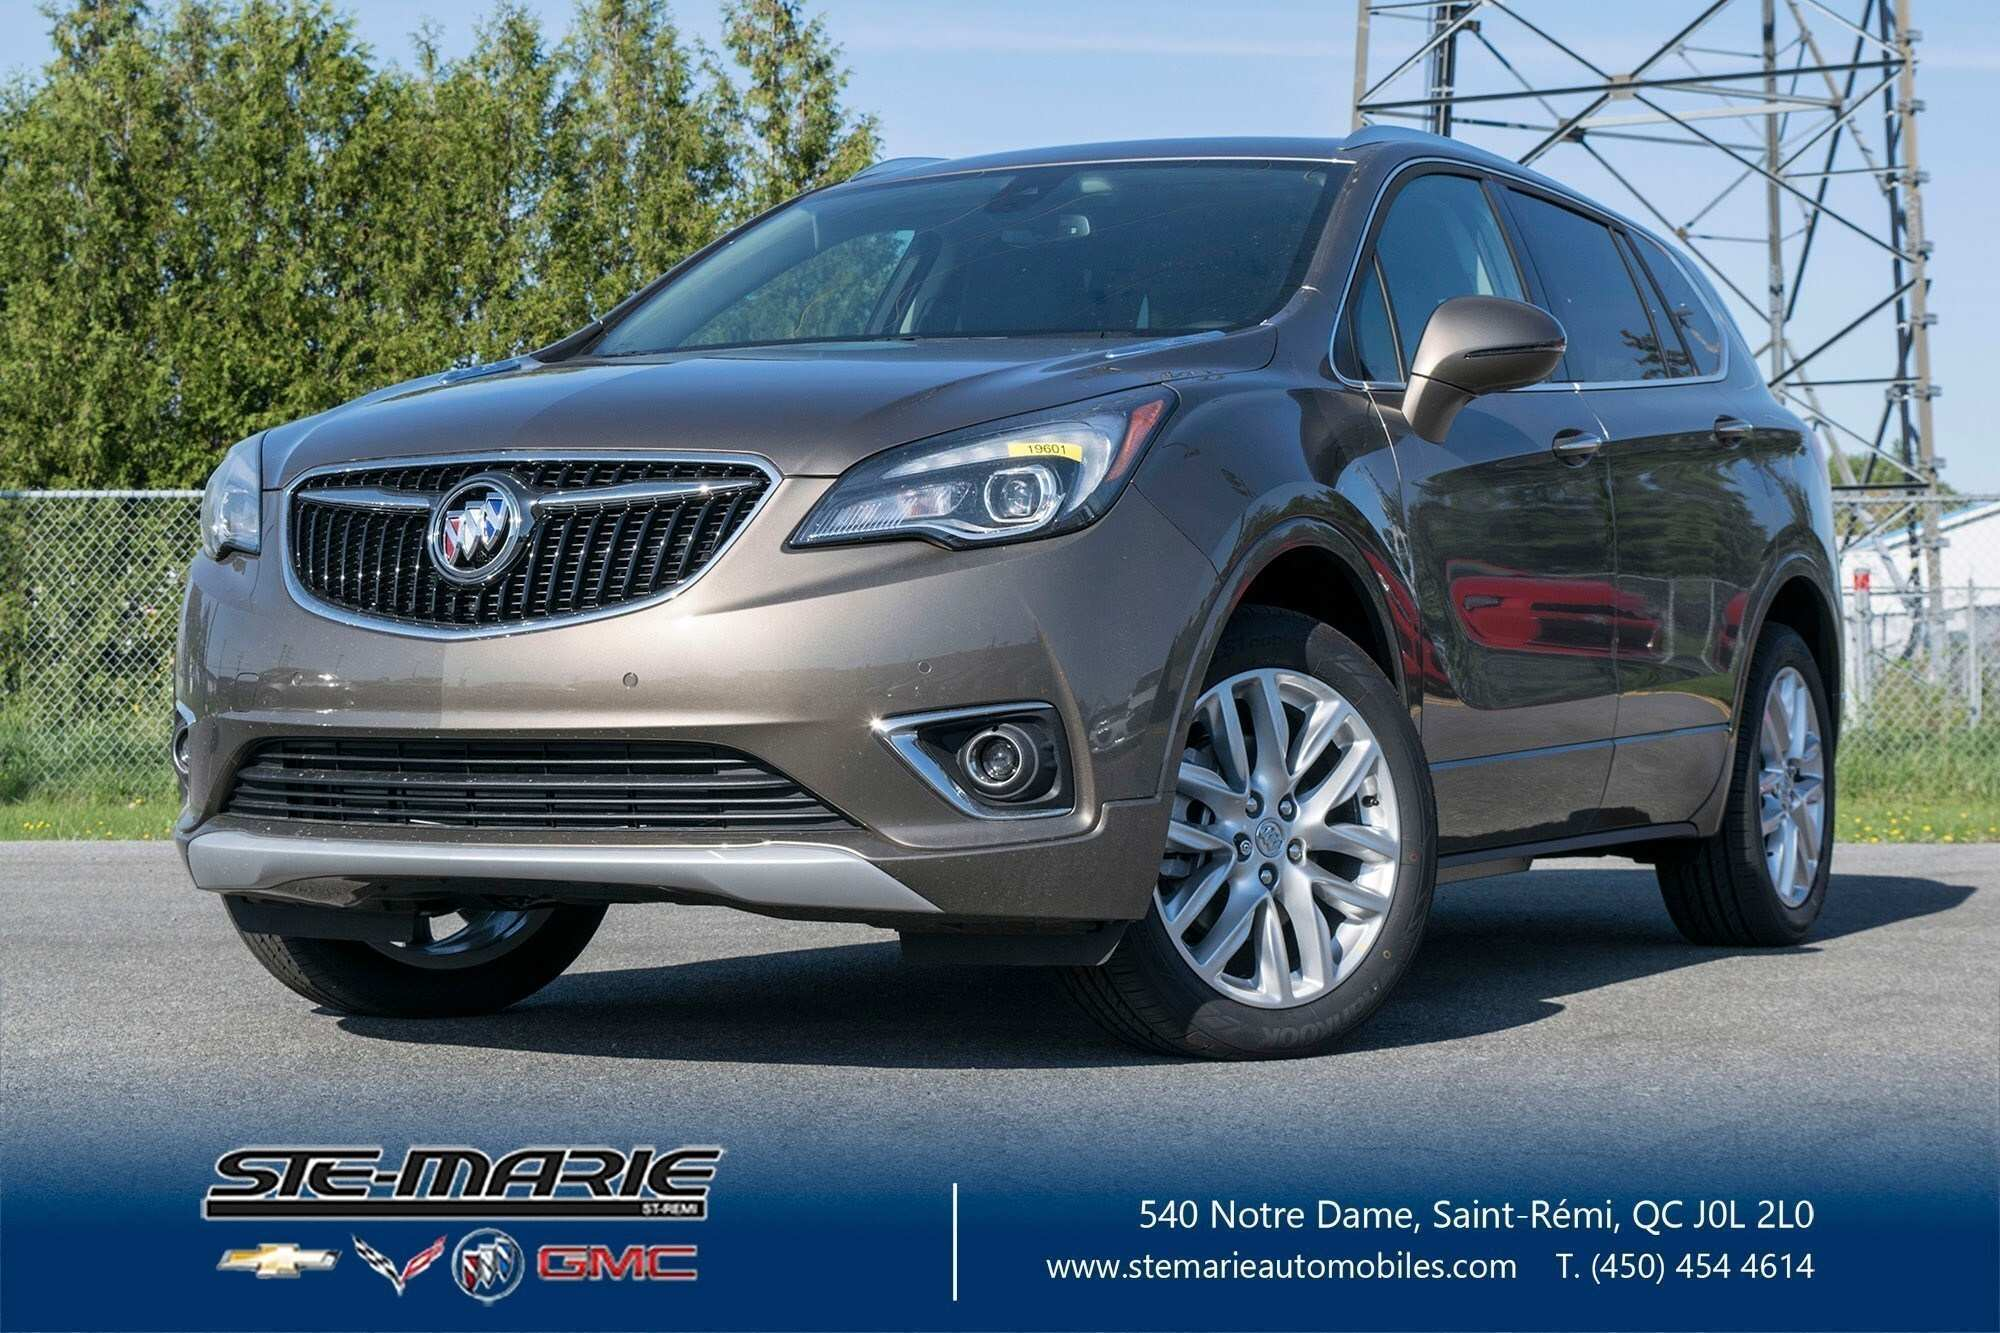 50 All New Best 2019 Buick Envision For Sale Spesification Model for Best 2019 Buick Envision For Sale Spesification